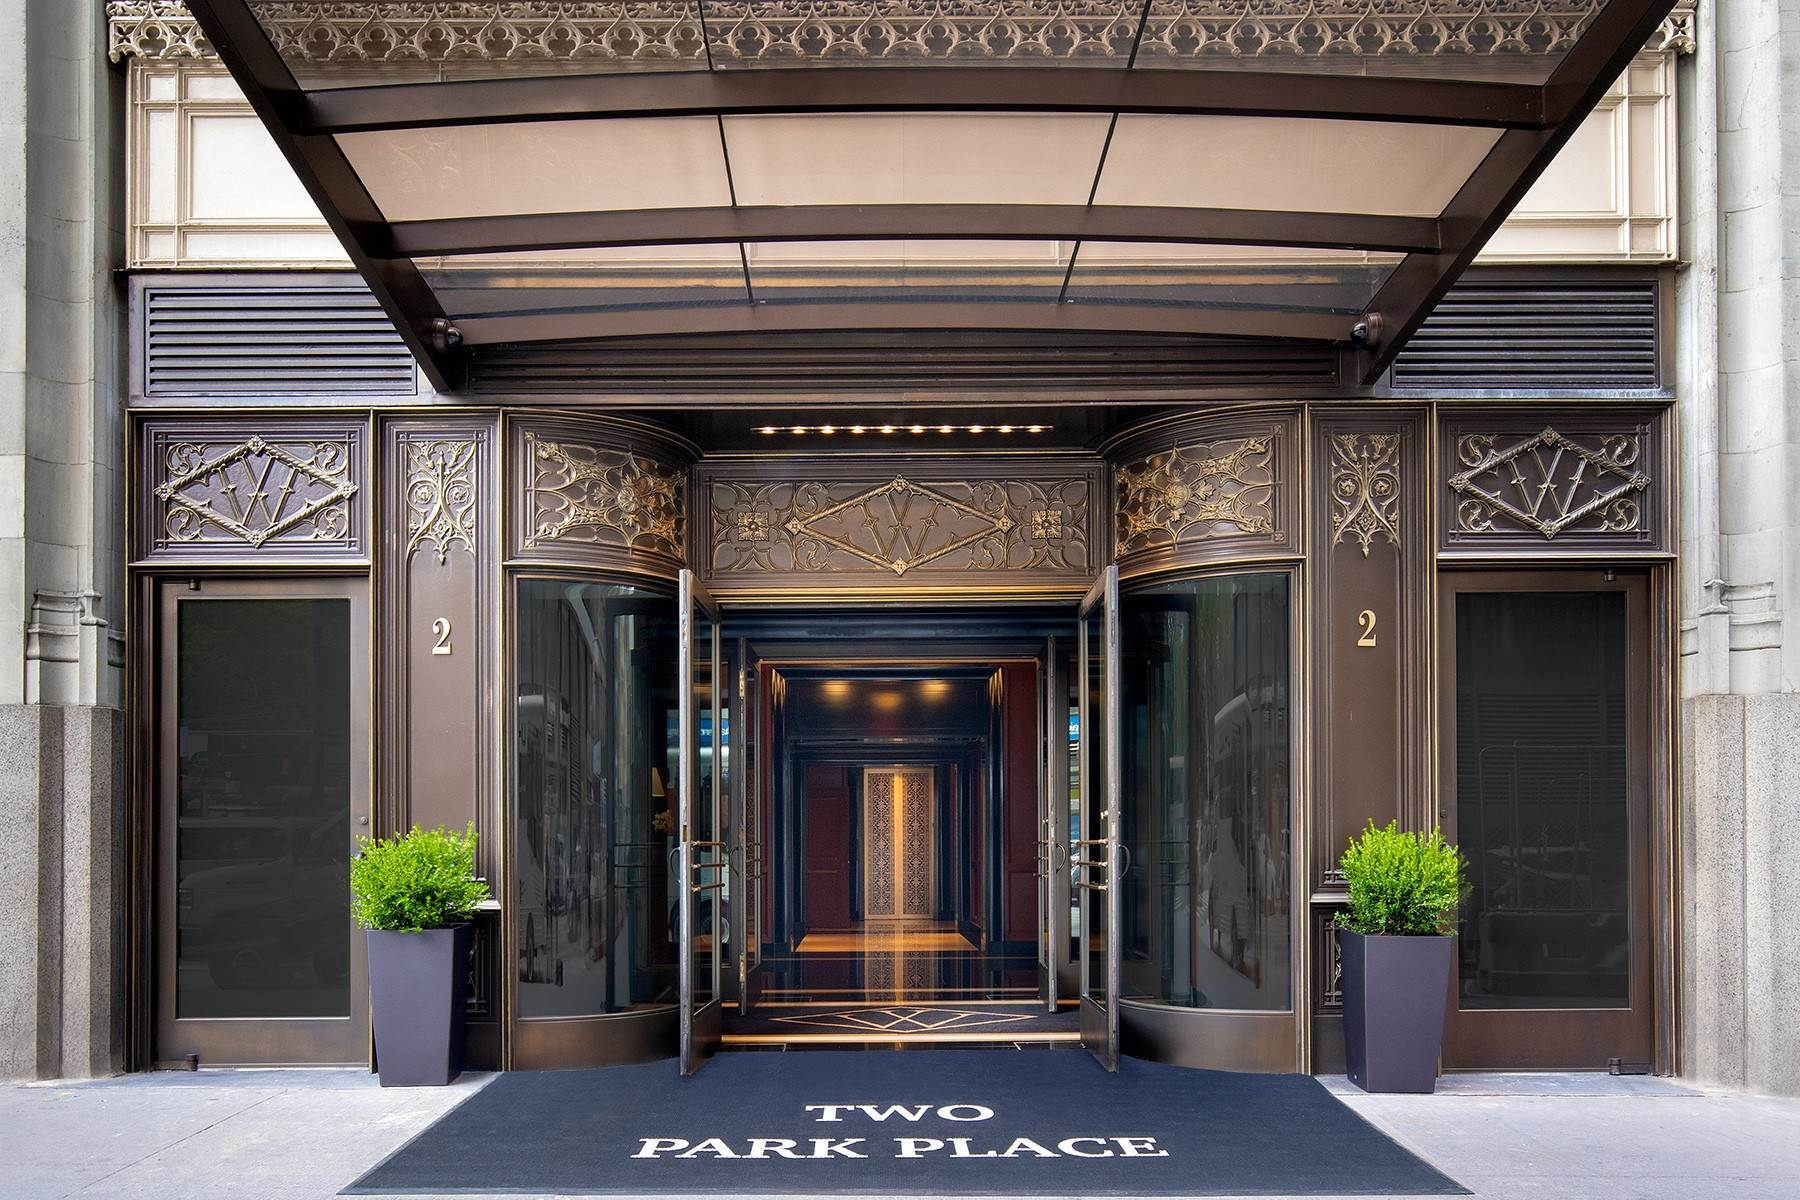 7. Condominiums for Sale at The Pinnacle Penthouse 2 Park Place, Pinnacle Penthouse New York, New York 10007 United States